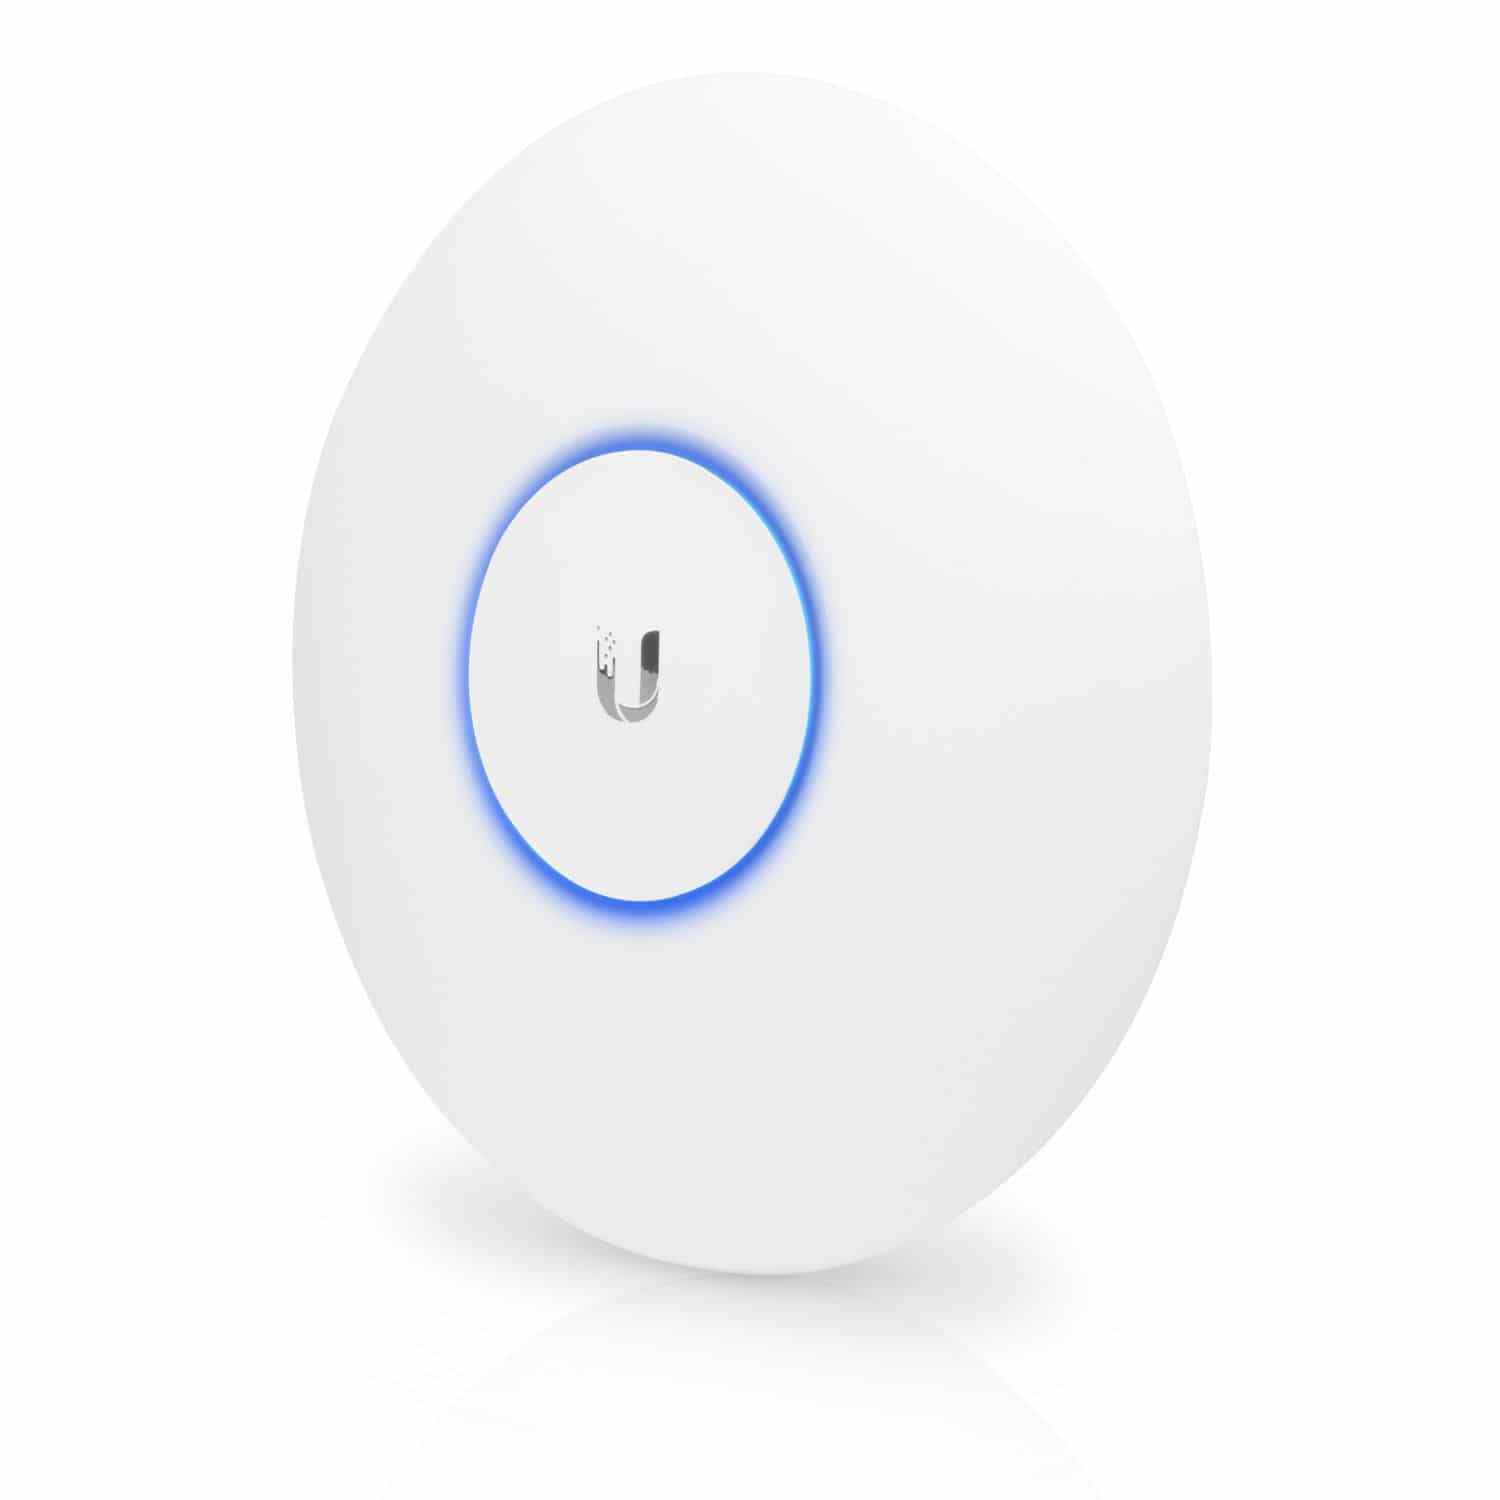 Antenne WIFI Unifi Ubiquity Wireless réseau informatique Secure inside